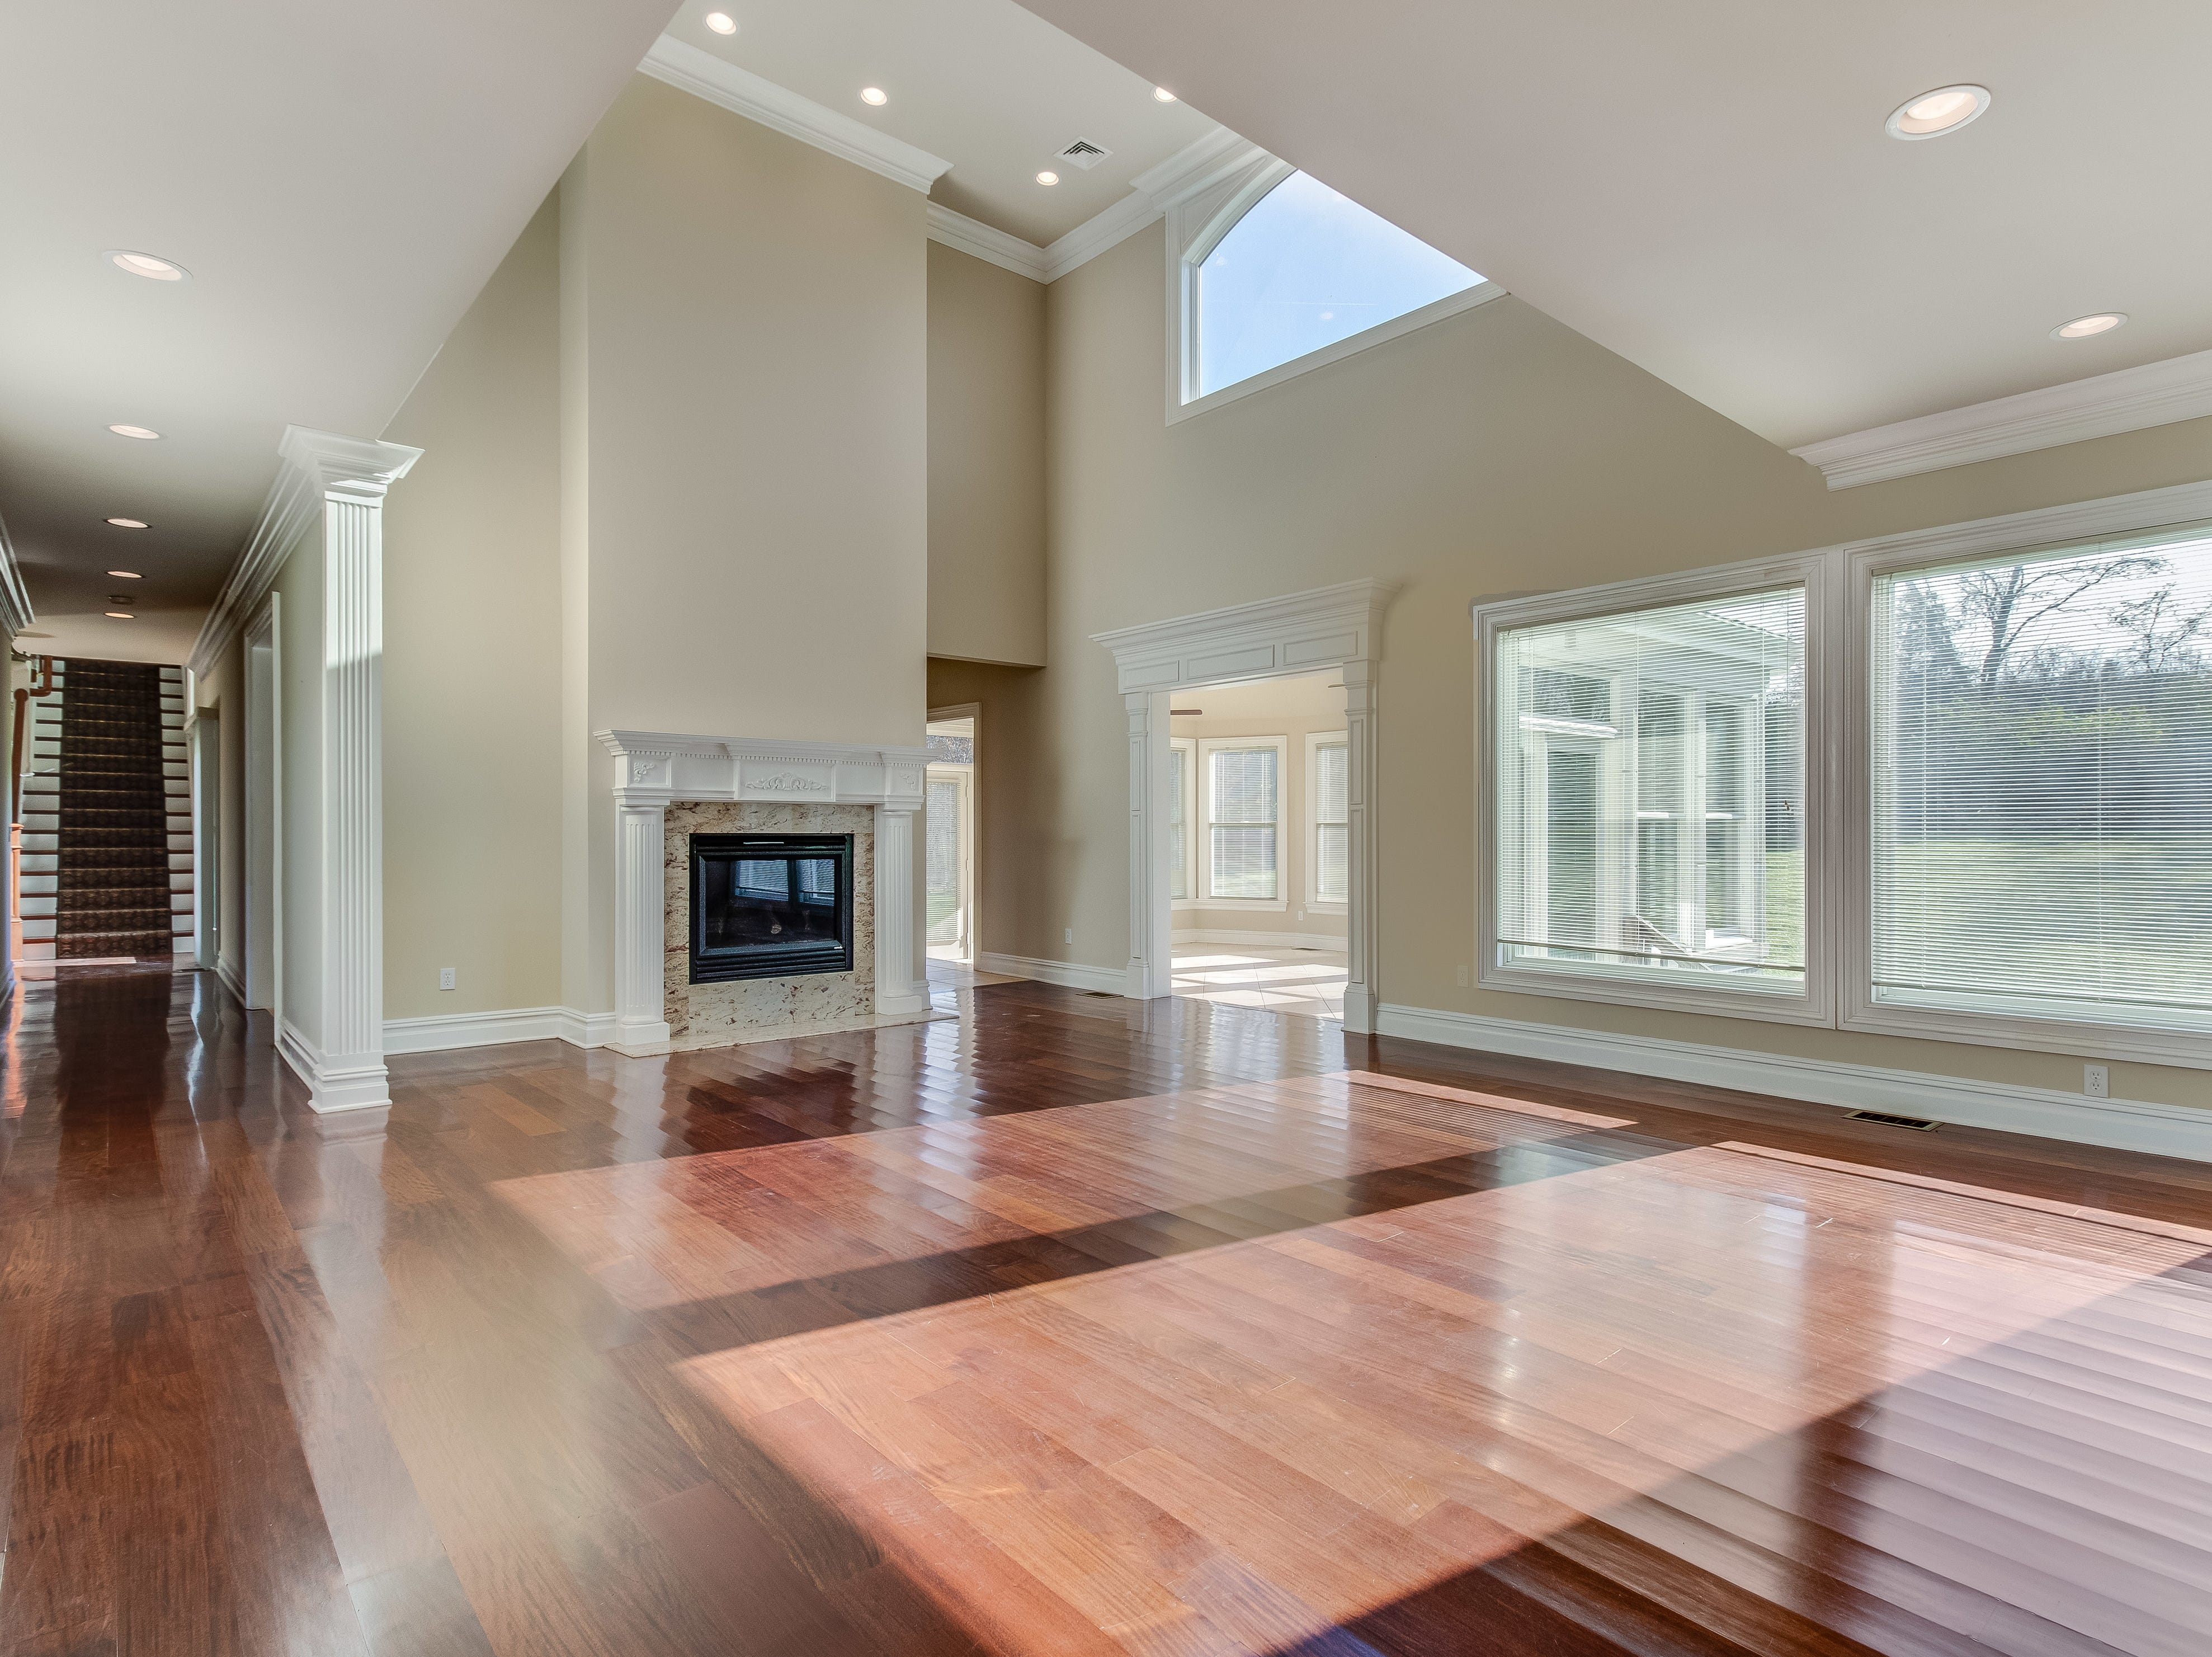 The family room of this 15-room estate home has a volume ceiling, a two-story fireplace, walls of windows overlooking the private backyard and hardwood floors.